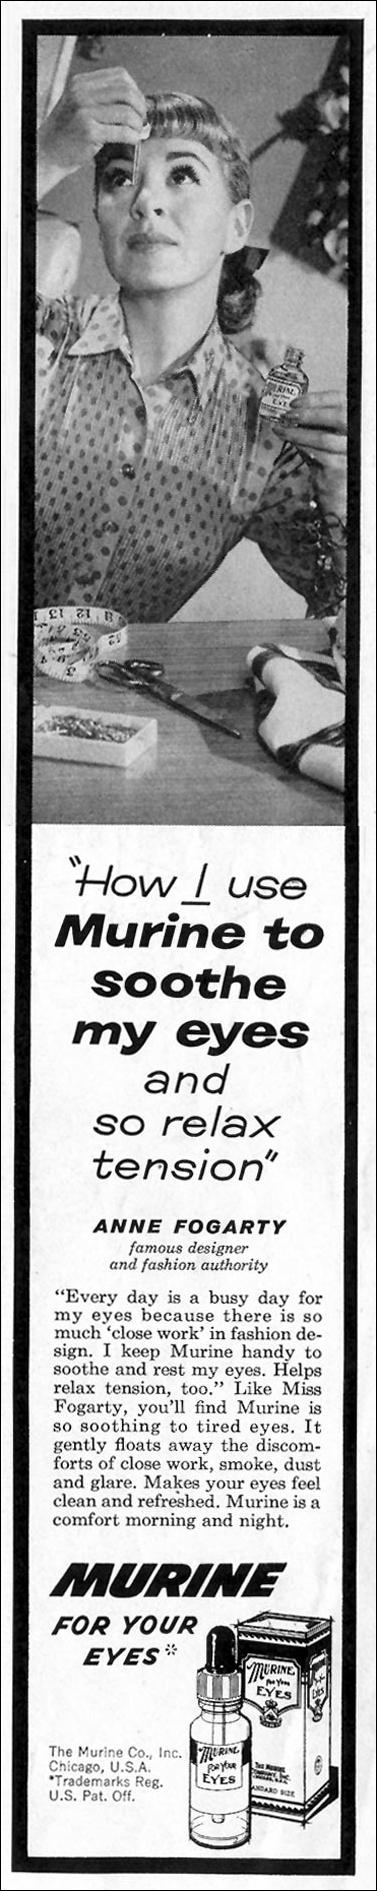 MURINE EYE WASH SATURDAY EVENING POST 05/02/1959 p. 3